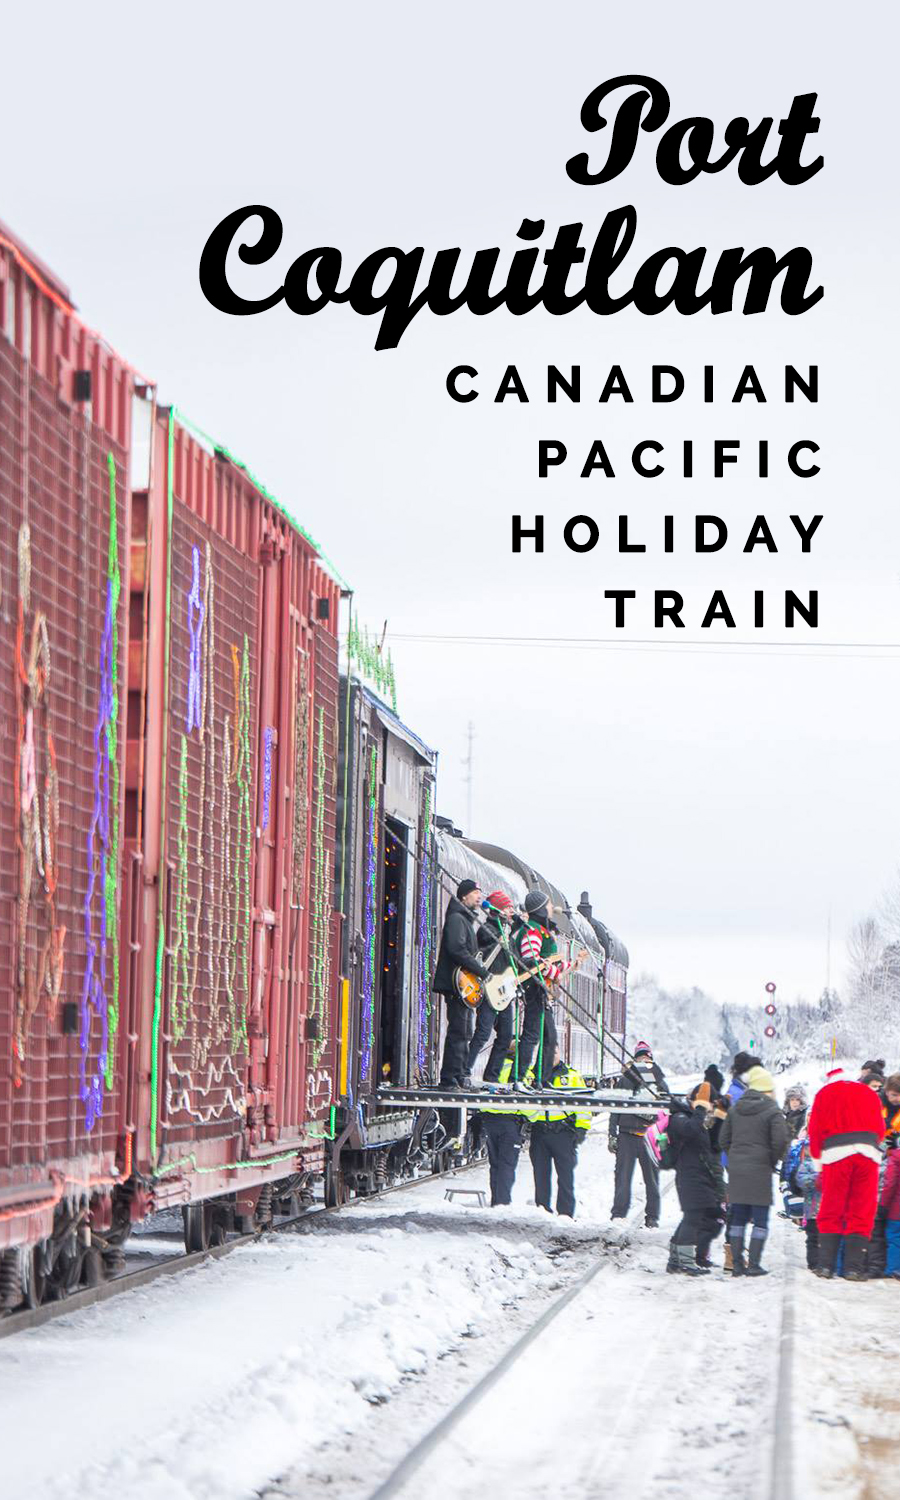 Canadian Pacific Holiday Train - A pan-Canada 1,000 feet train traveling across the country and bringing performances to you on a brightly decorated boxcar stage – can Christmas get better than this? The Holiday Train will offer live holiday-themed music when it stops at the West Coast Express Station in Port Coquitlam, before slipping off into the night again.There is also Skate with Santa at the PoCo Rec Complex (just across the street from the train station) from 1:15pm to 3:45pm, calling for a day packed with fun and holiday spirit in Port Coquitlam.WHEN: December 17 • 6pm to 6:45pmSkate with Santa at the PoCo Rec Complex: 1:15pm to 3:45pmWHERE: Port Coquitlam West Coast Express Station, Port Coquitlam (map)COST: FREE (accepts heart-healthy donation or monetary donation for the local food bank)Skate with Santa: regular public skate admission